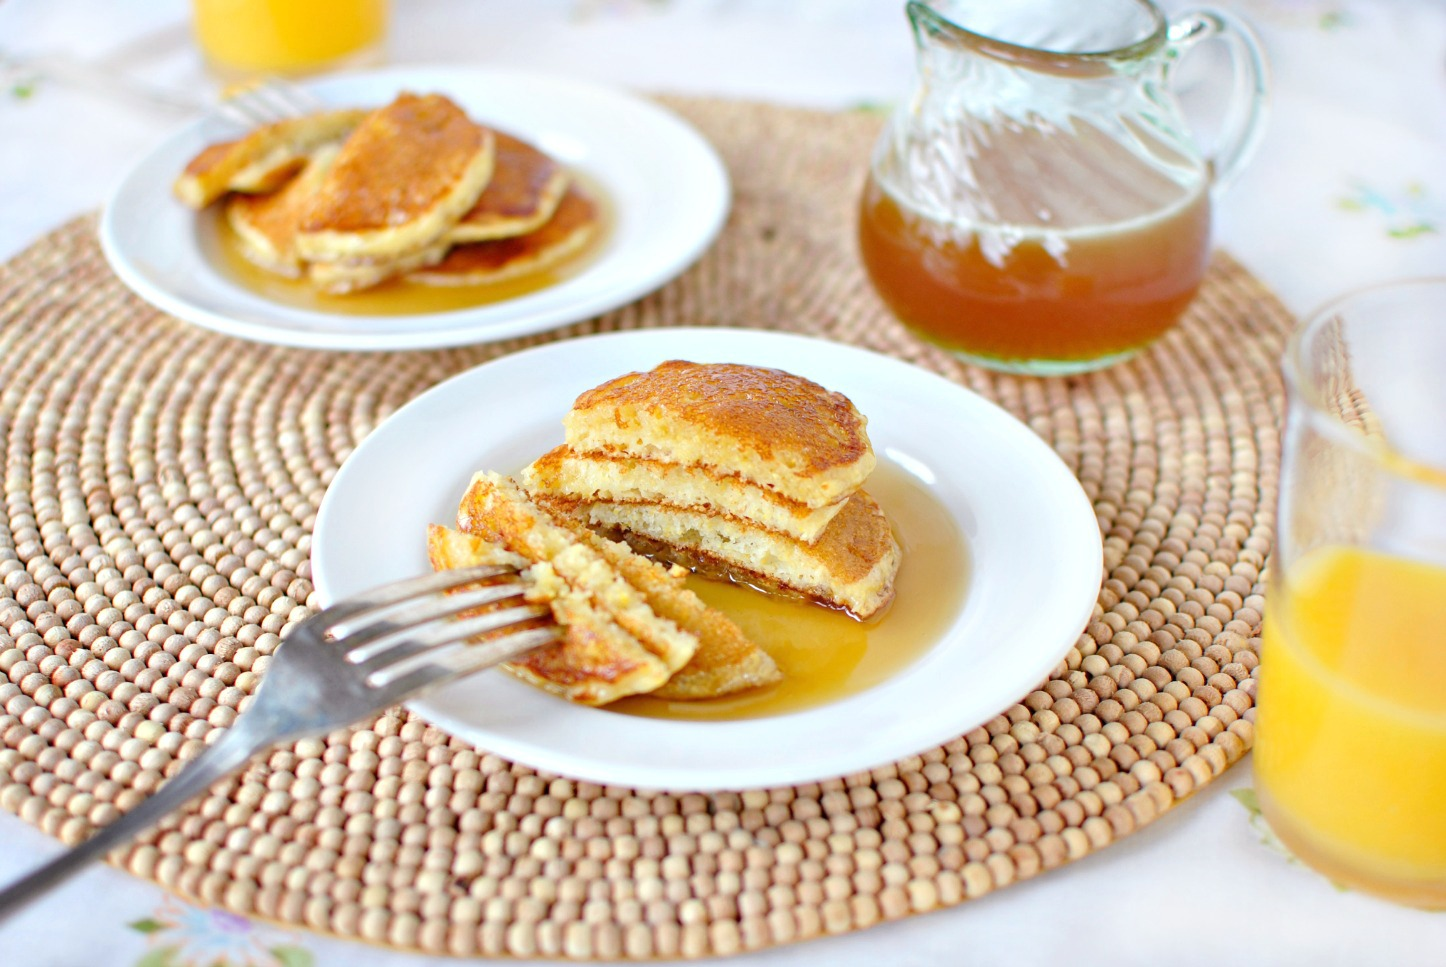 Cornmeal Pancakes With Orange Maple Butter Recipes — Dishmaps